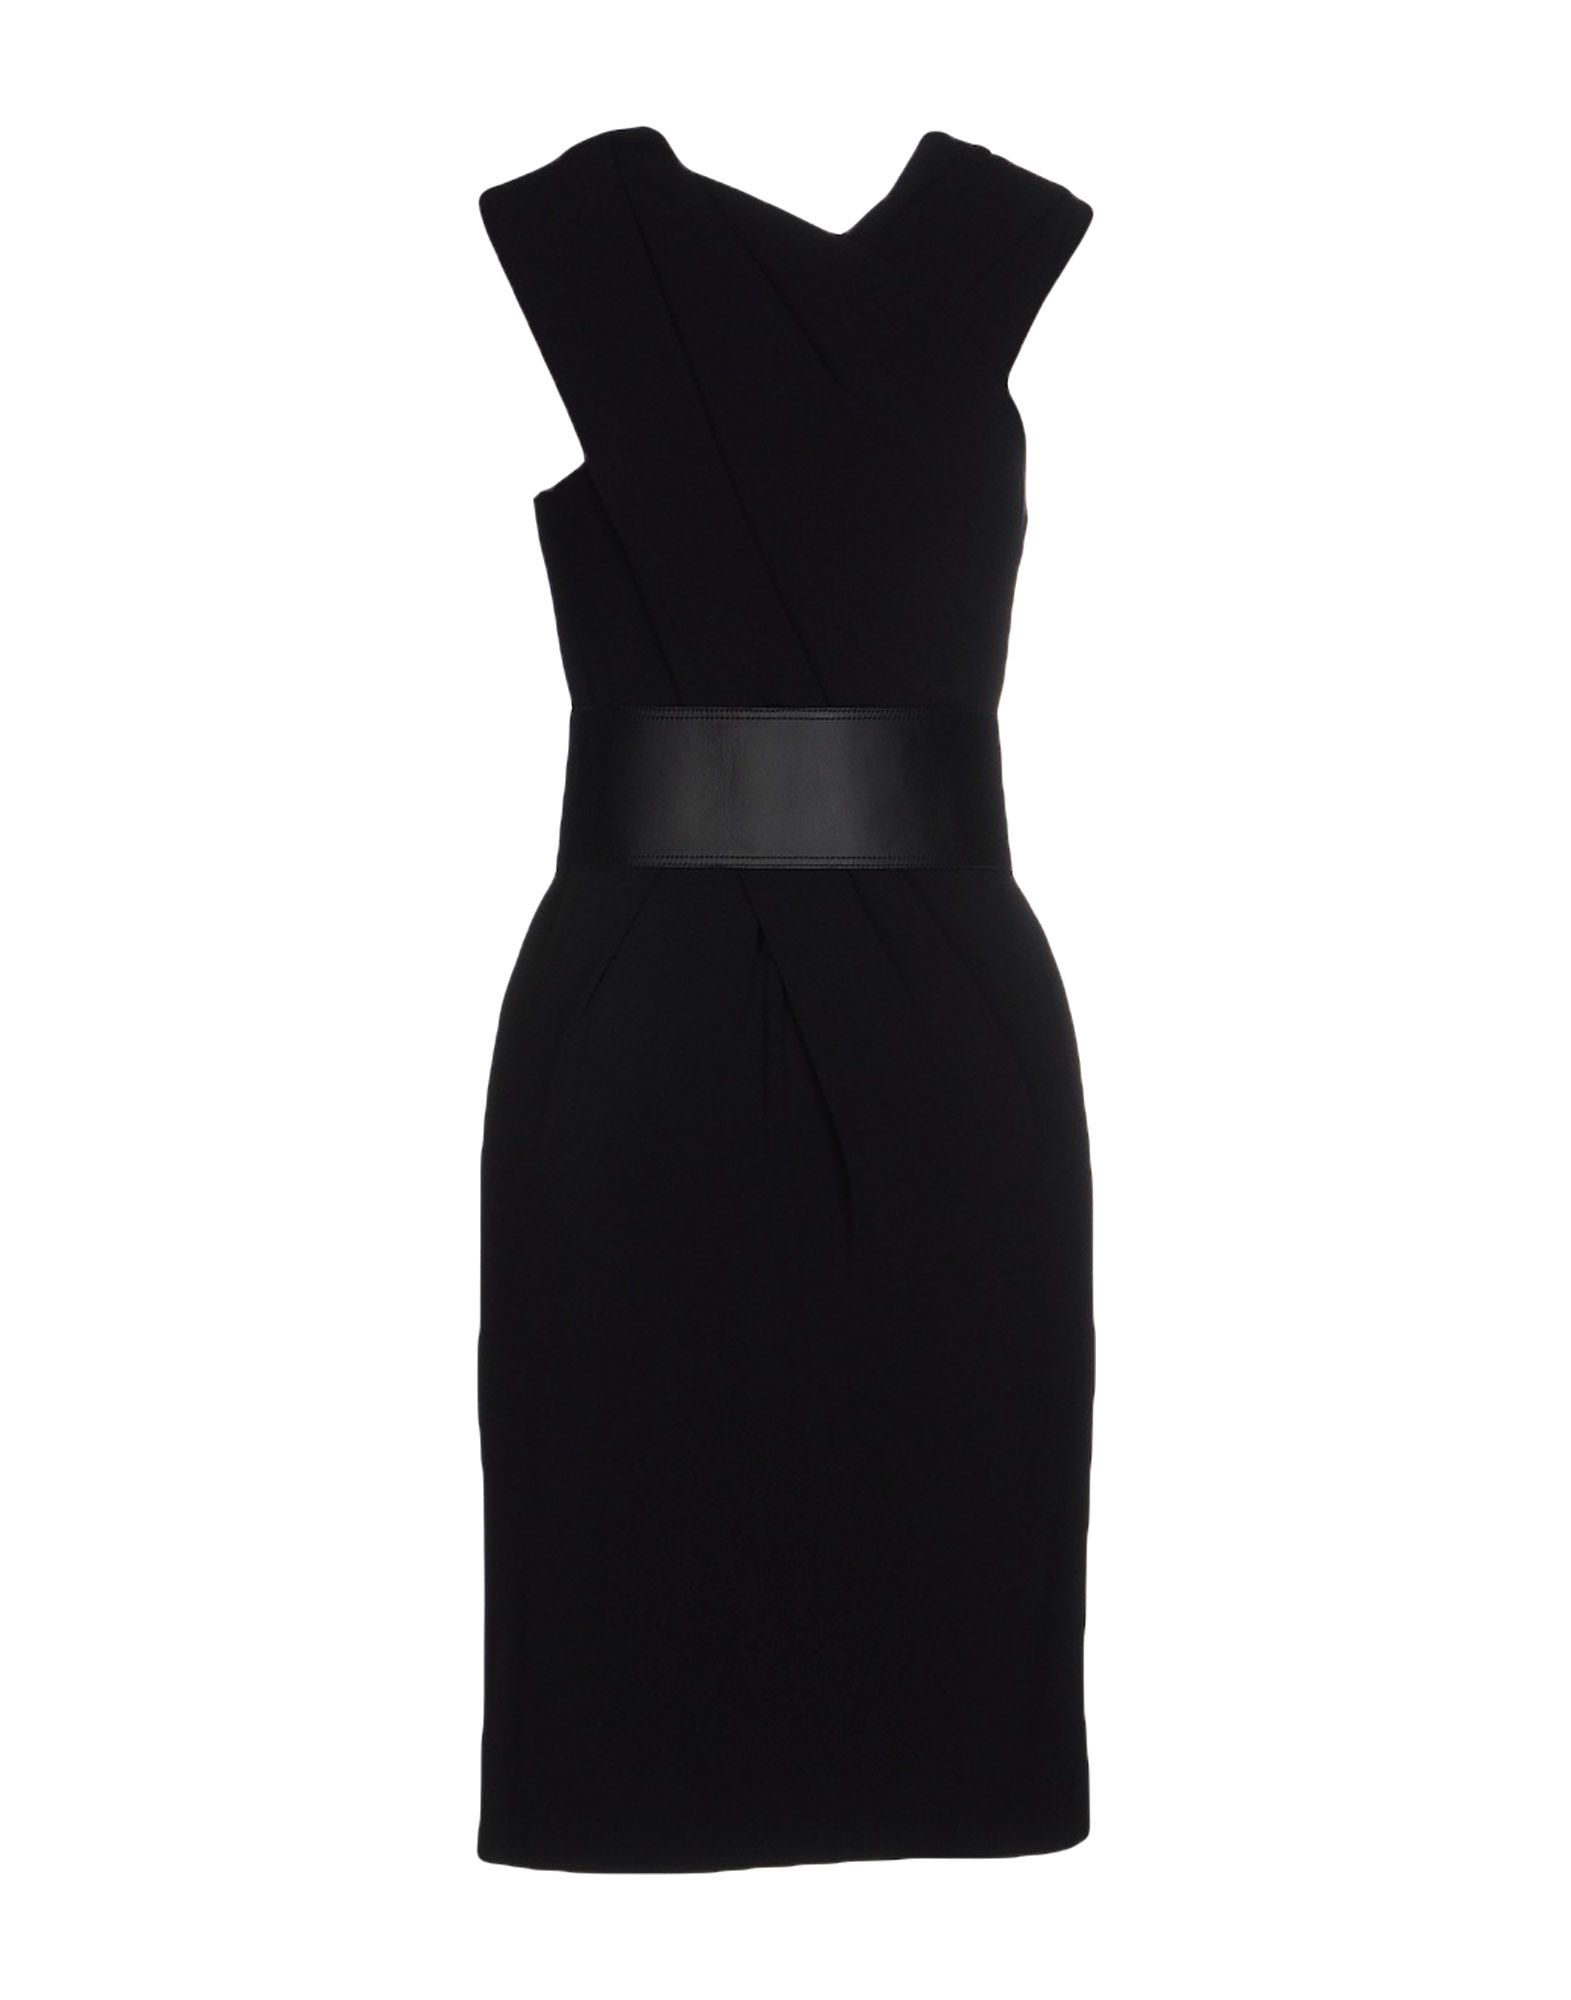 Alexander wang black dress 1